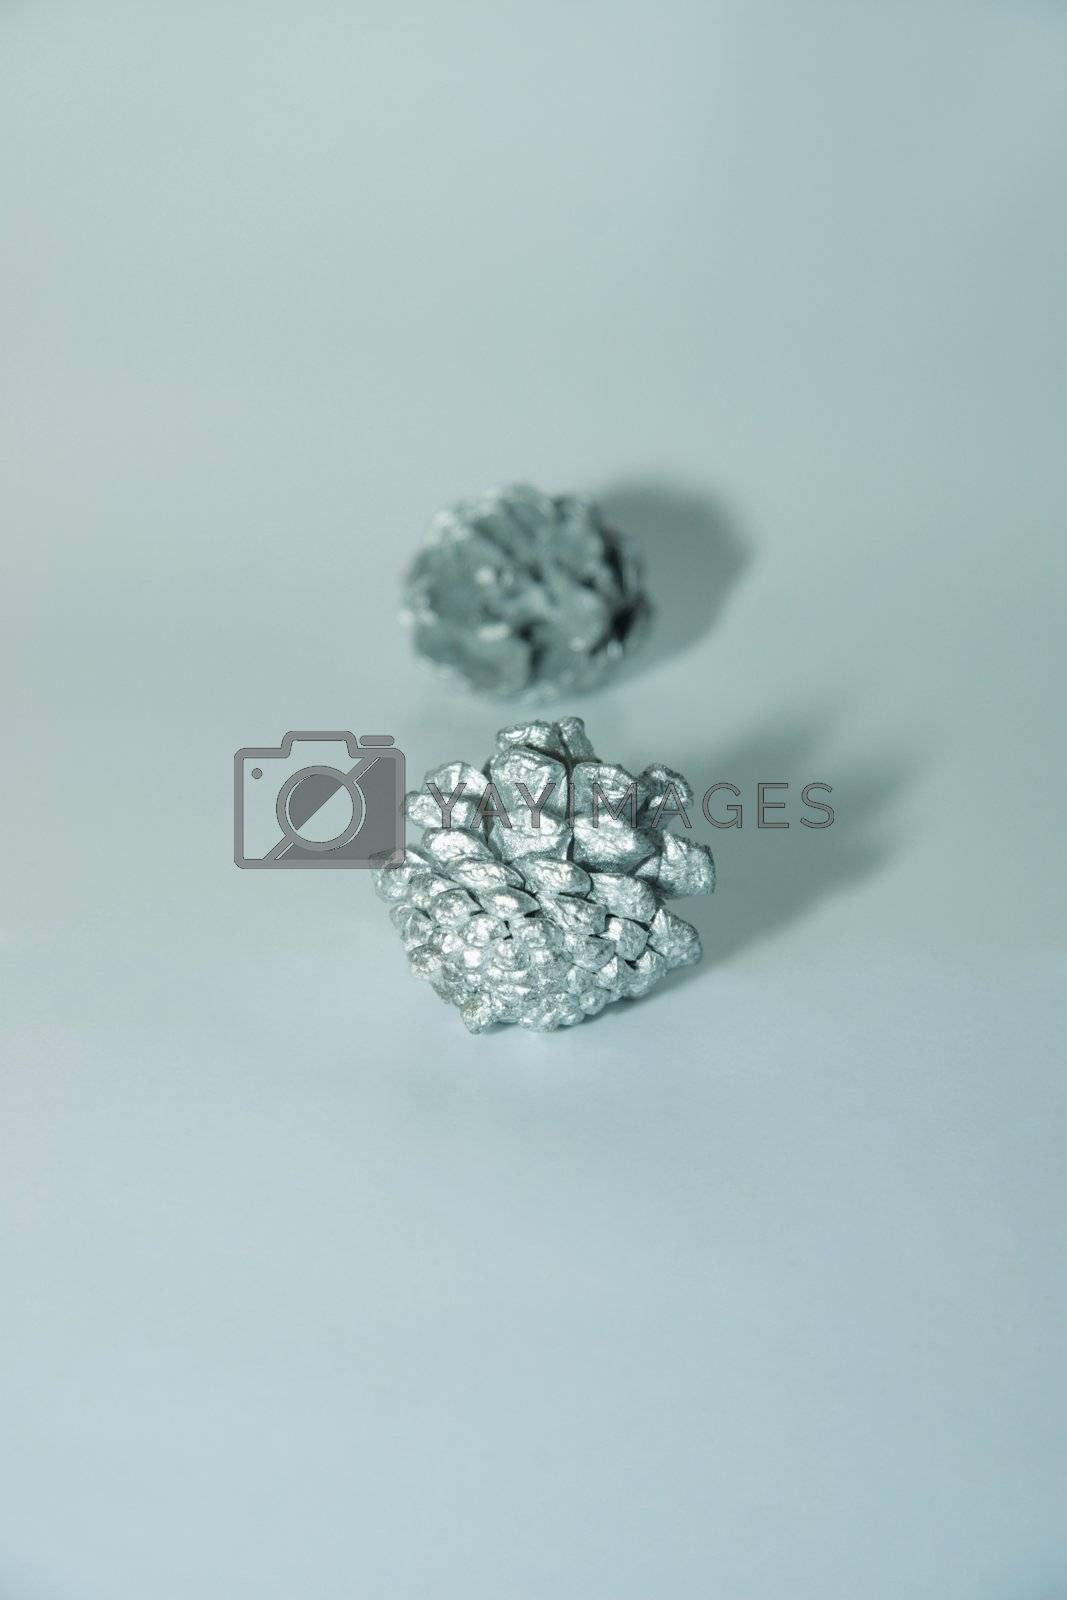 a  blue and silver christmas decorations seed